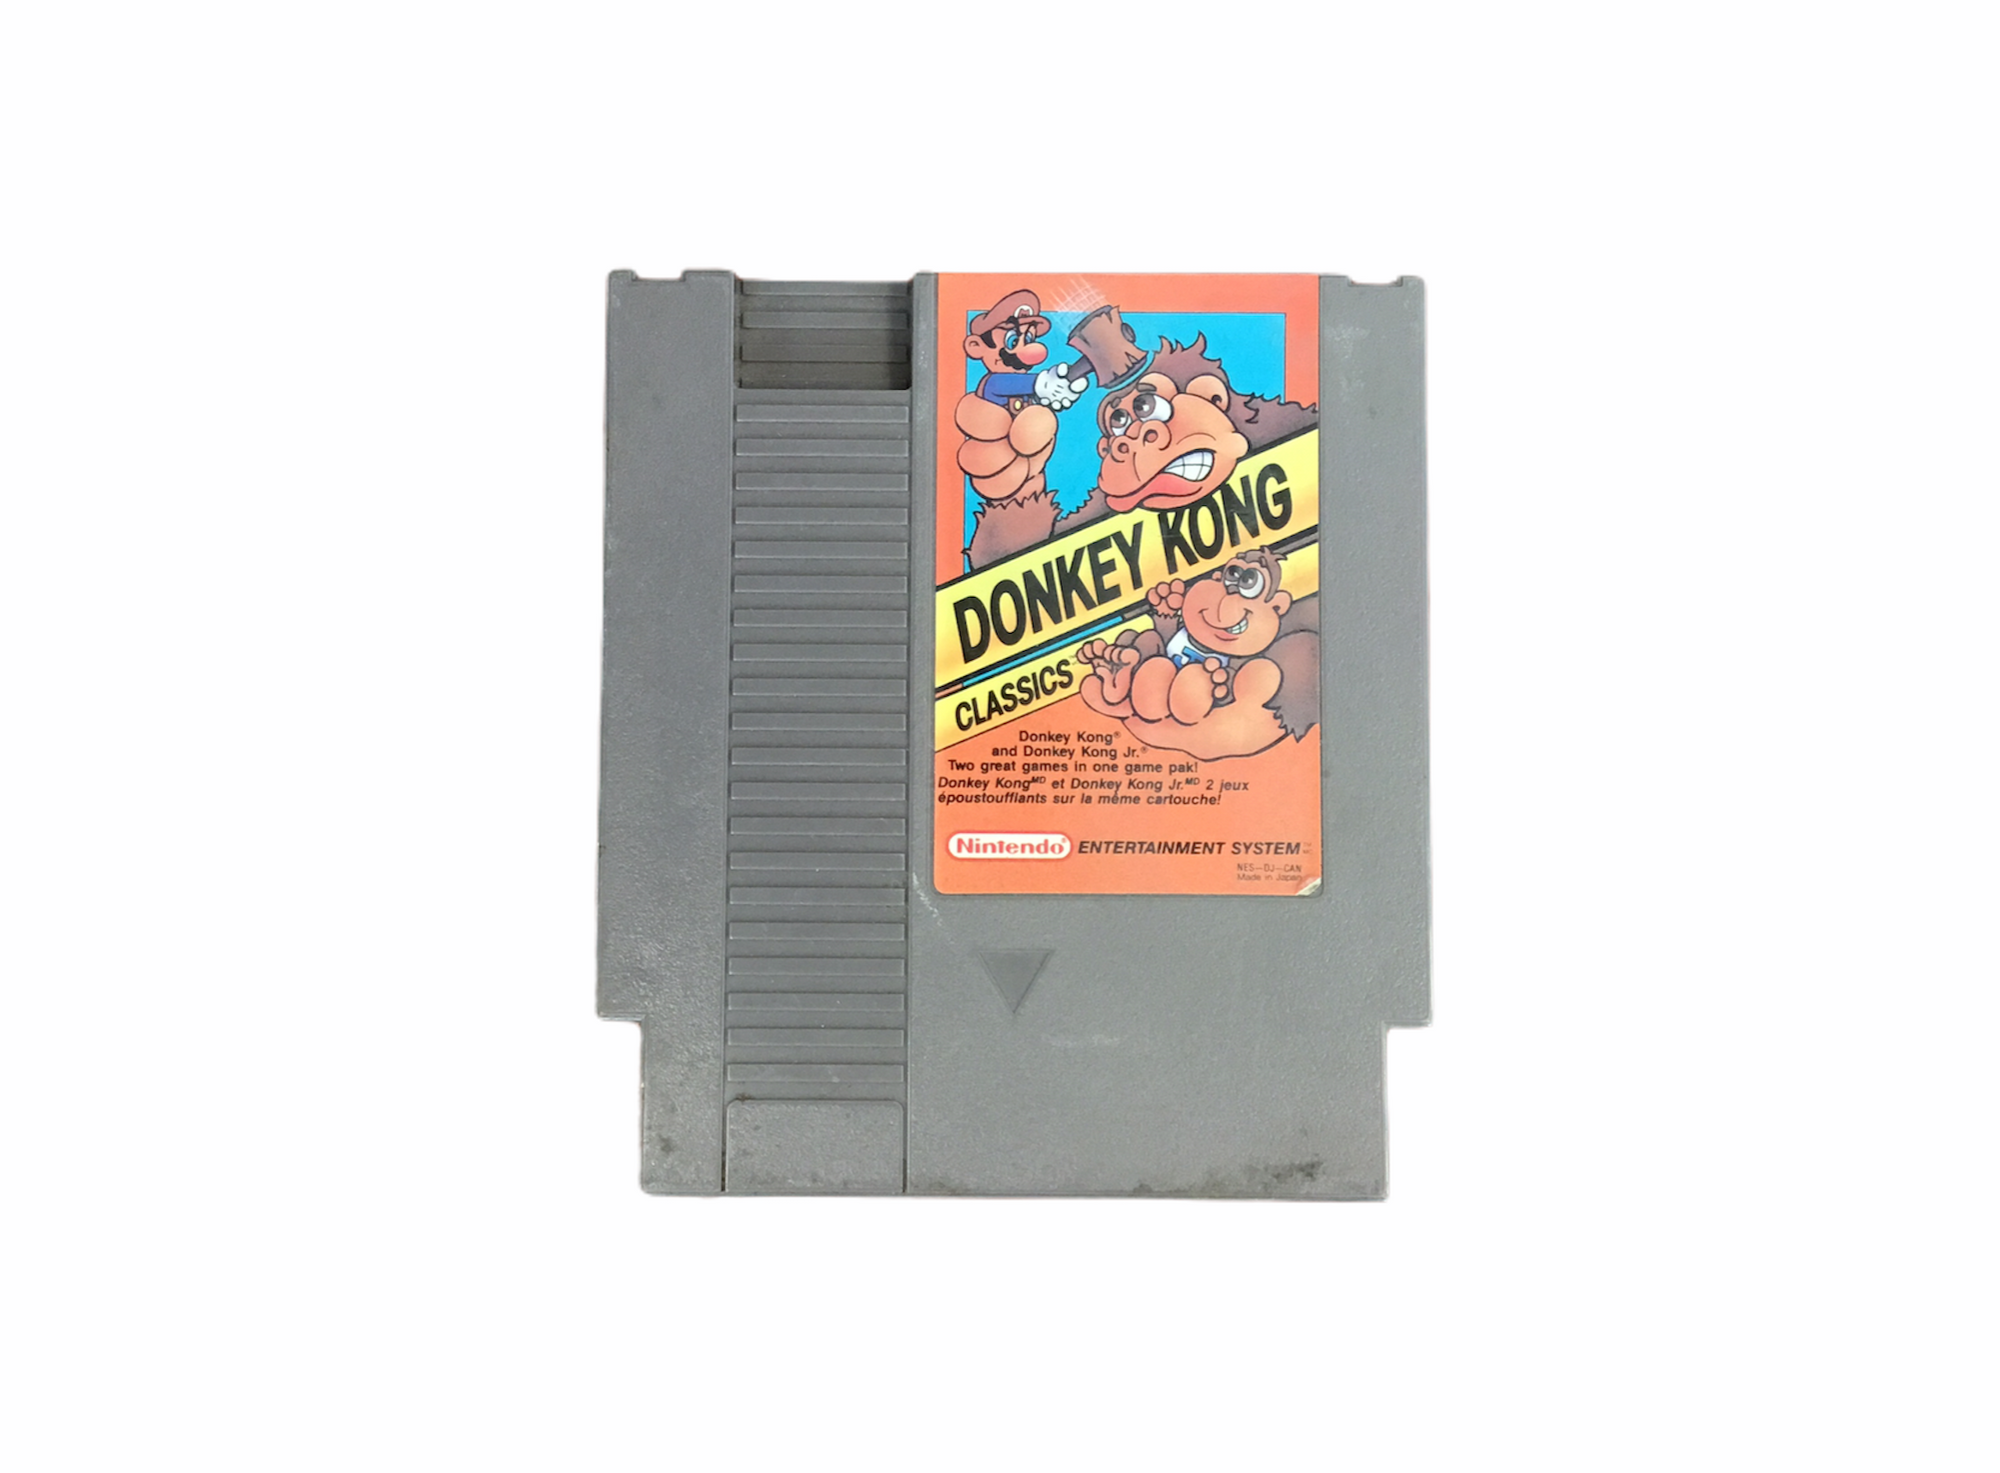 Nintendo Donkey Kong Classic Video Game Nes Cartridge Only T833